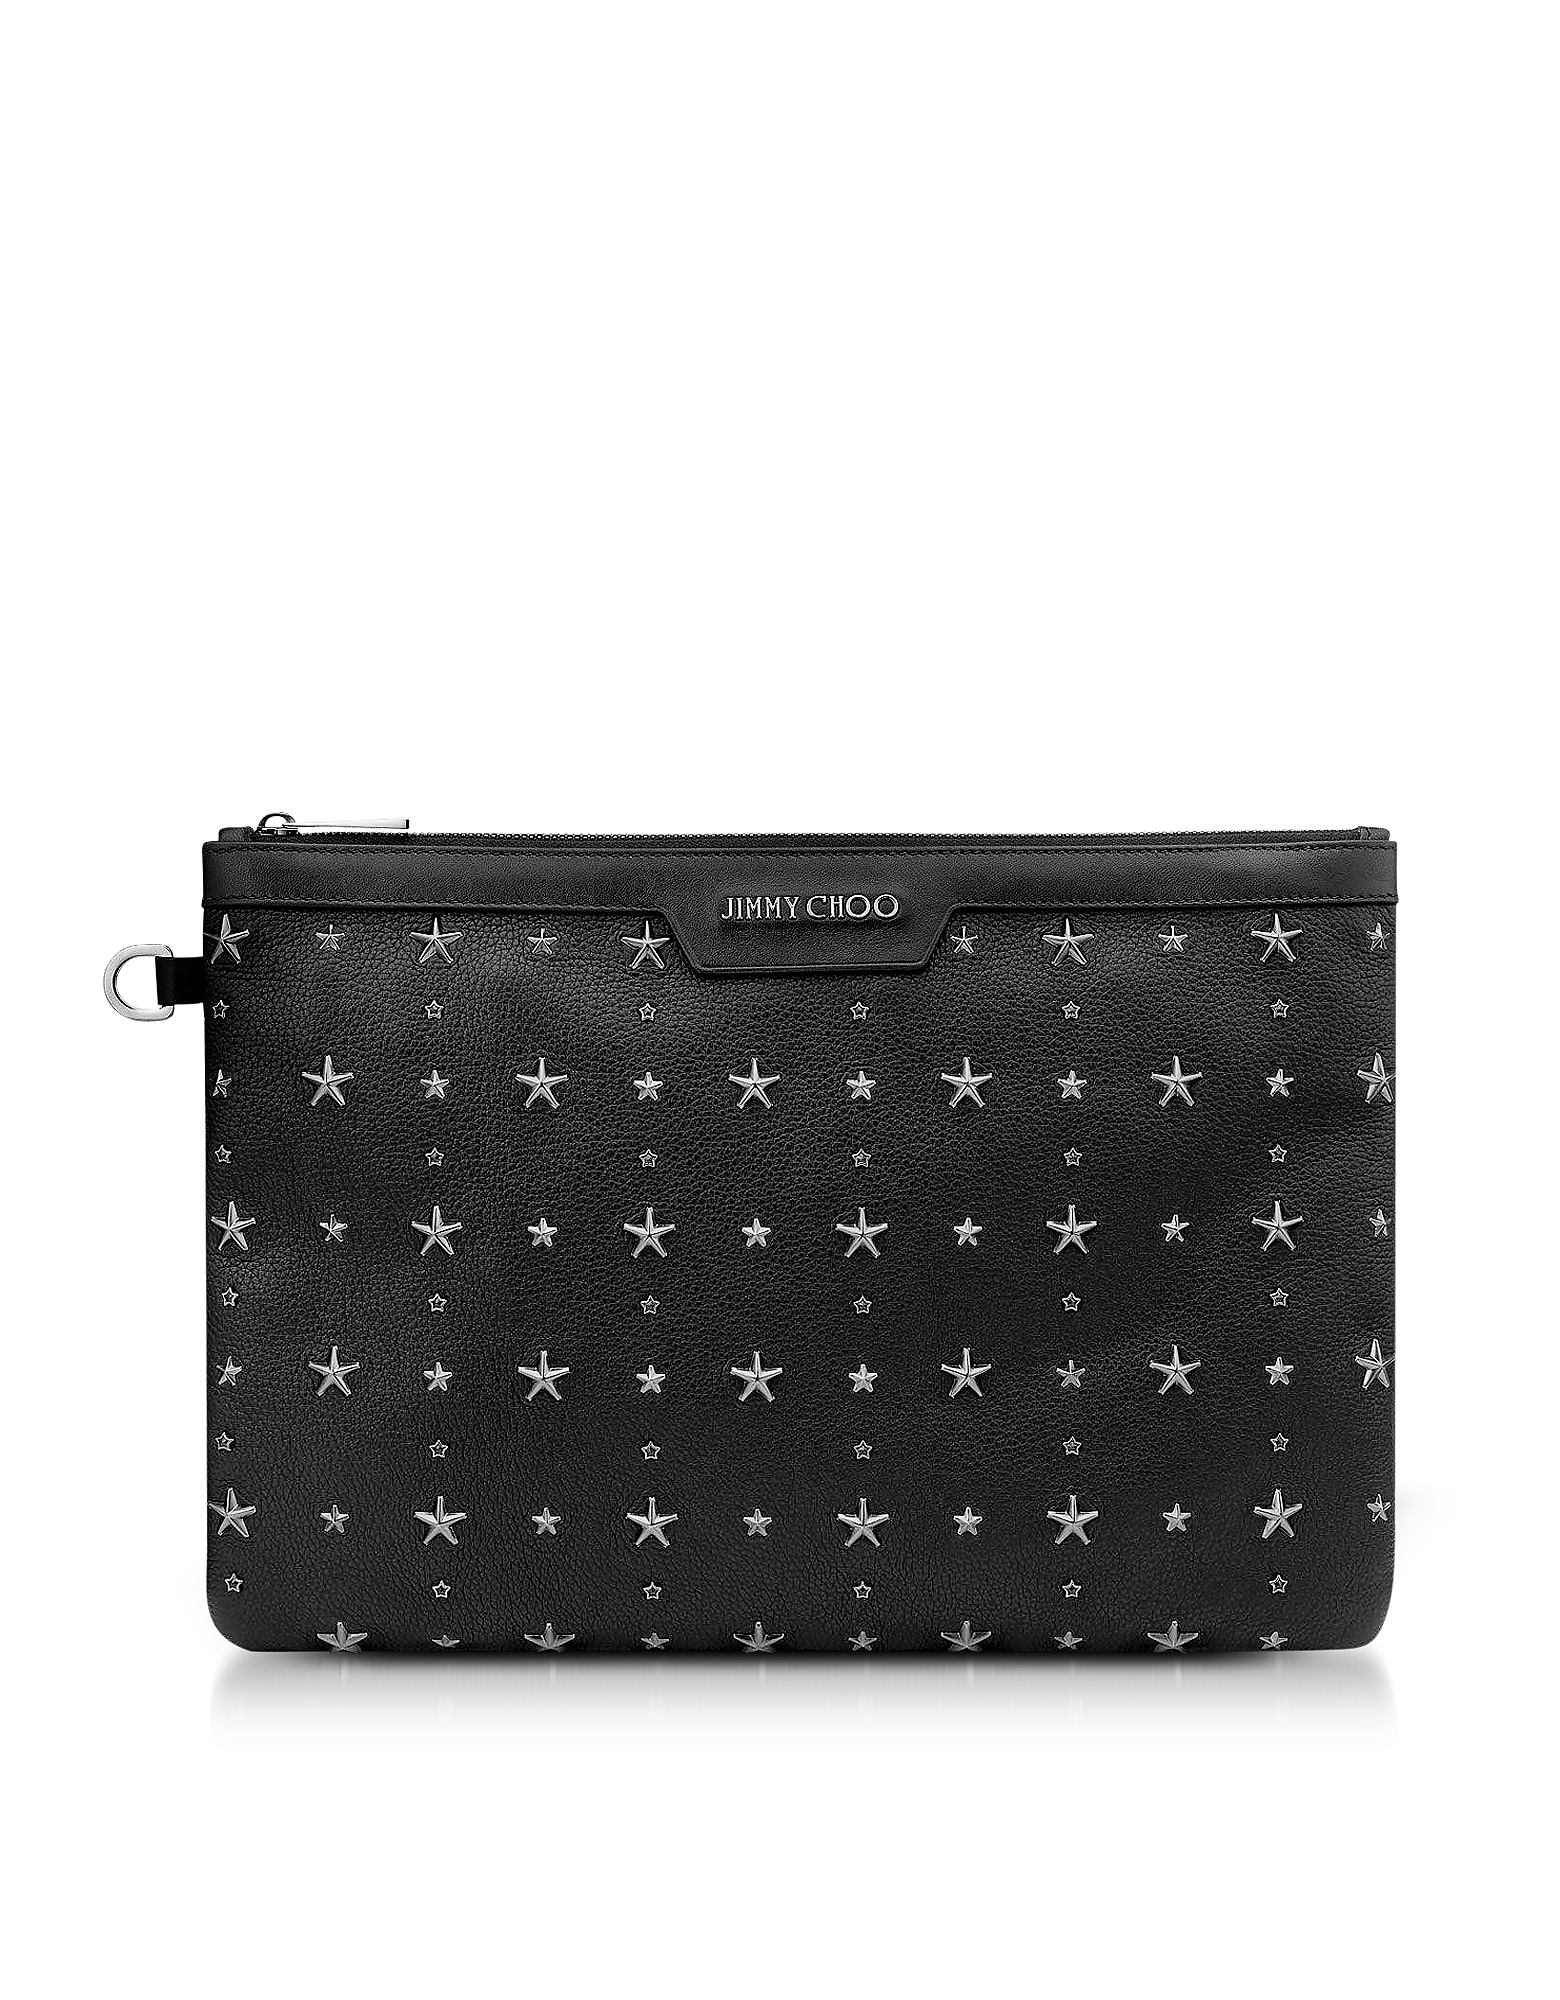 Jimmy Choo Handbags, Black Grainy Leather Derek Clutch